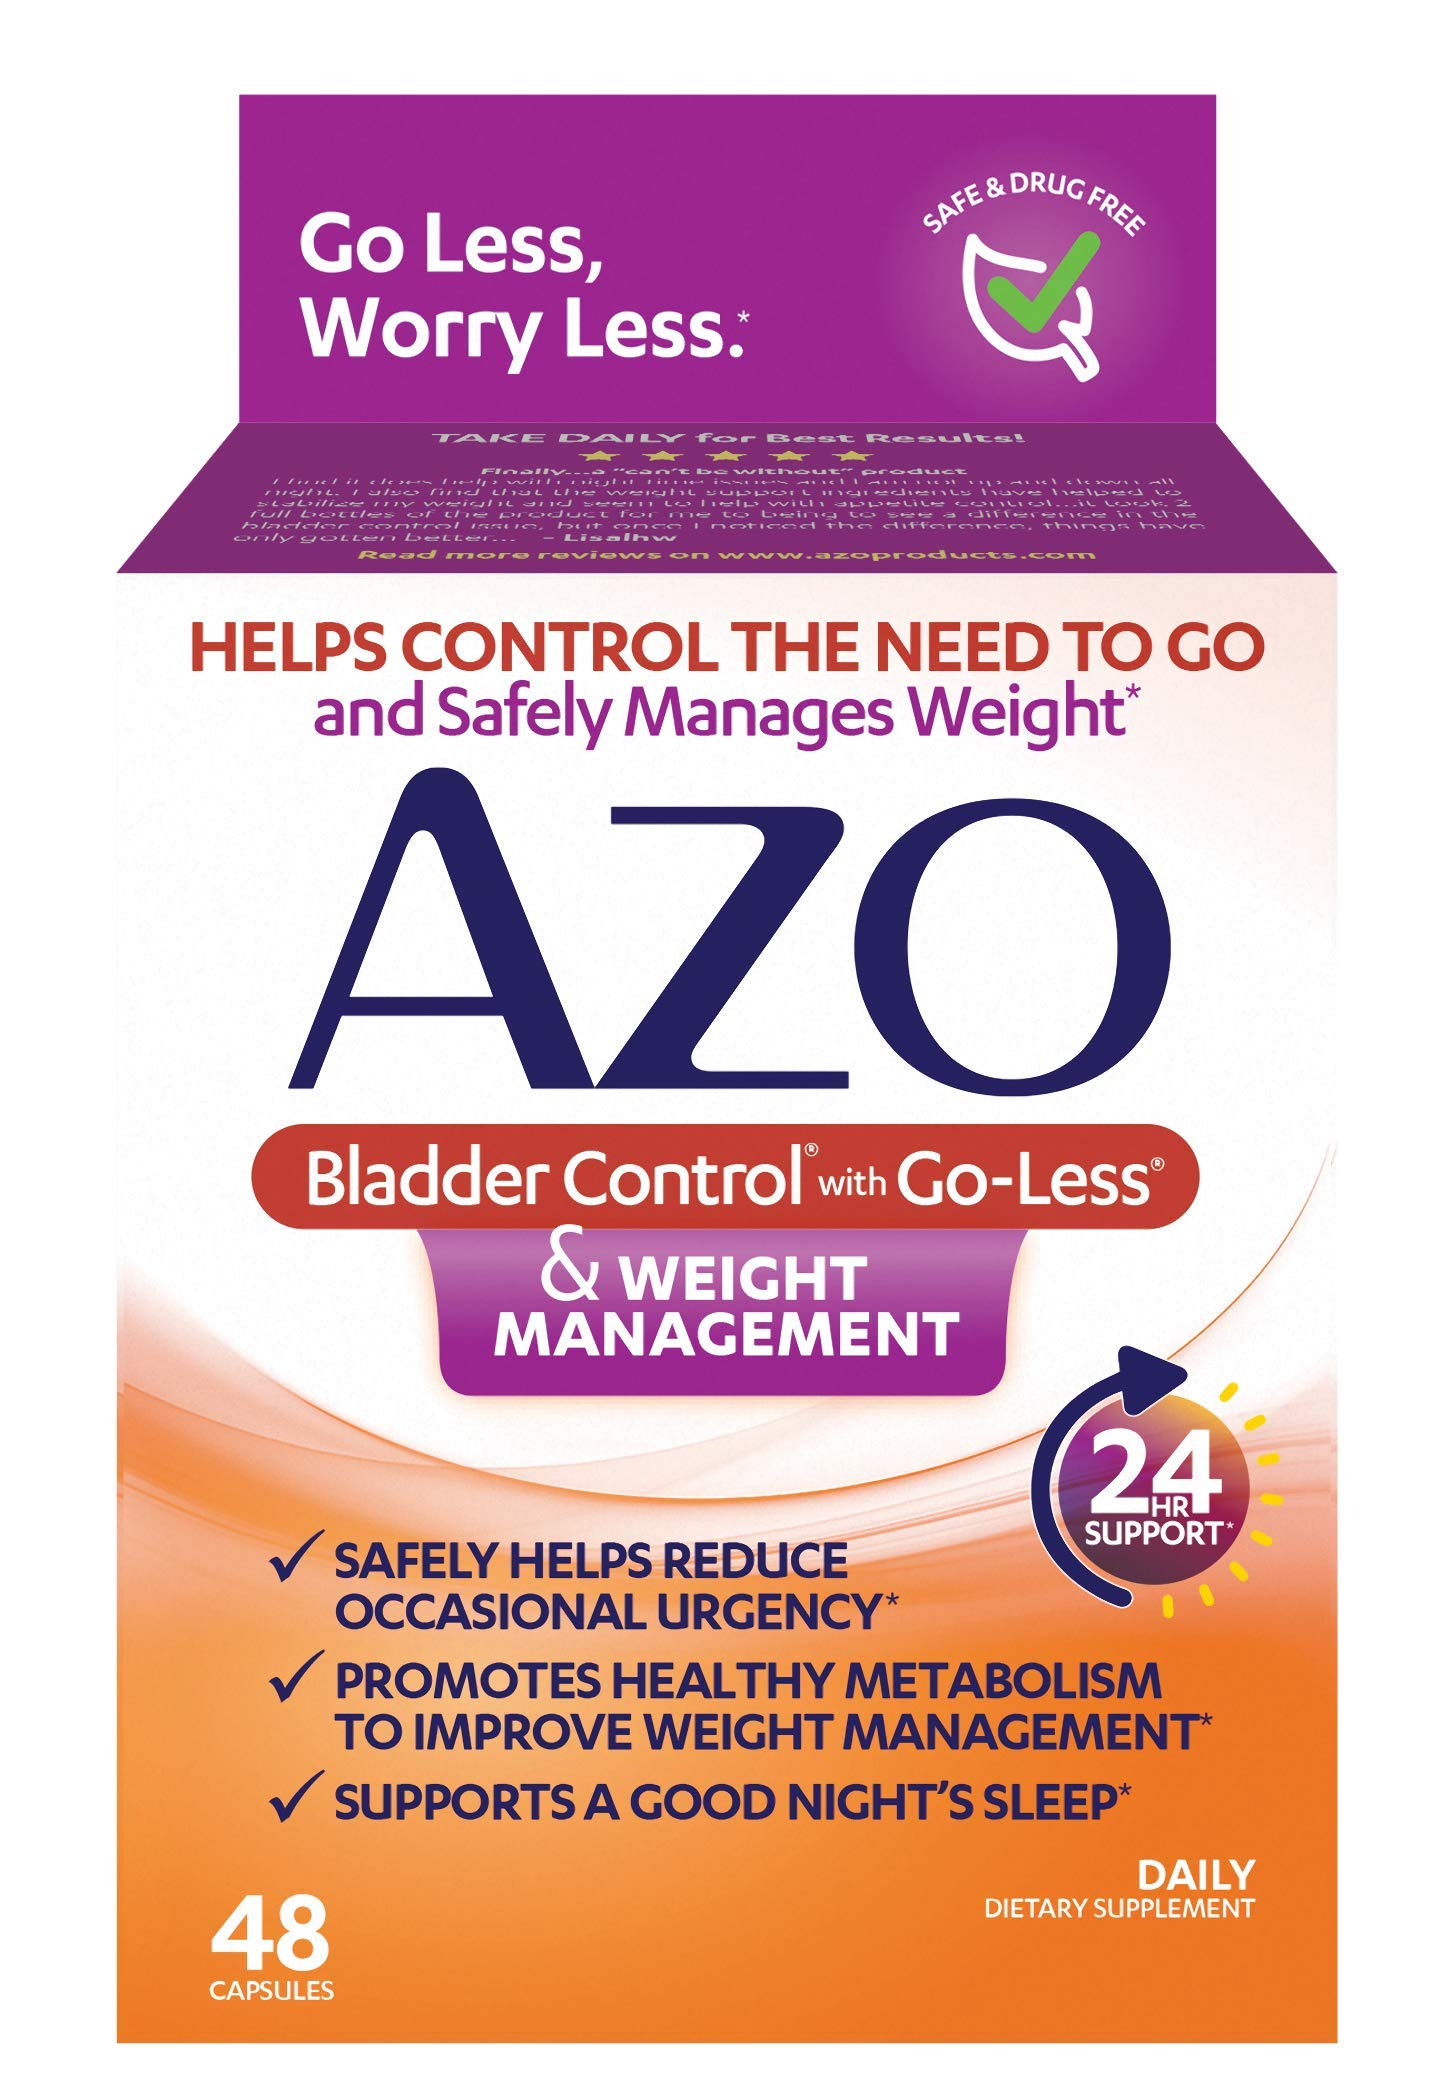 AZO Bladder Control with Go-Less® & Weight Management Dietary Supplement |  Safely Helps Reduce Occasional Urgency* | Promotes Healthy Metabolism* | Supports a Good Night's Sleep* | 48 Capsules by AZO